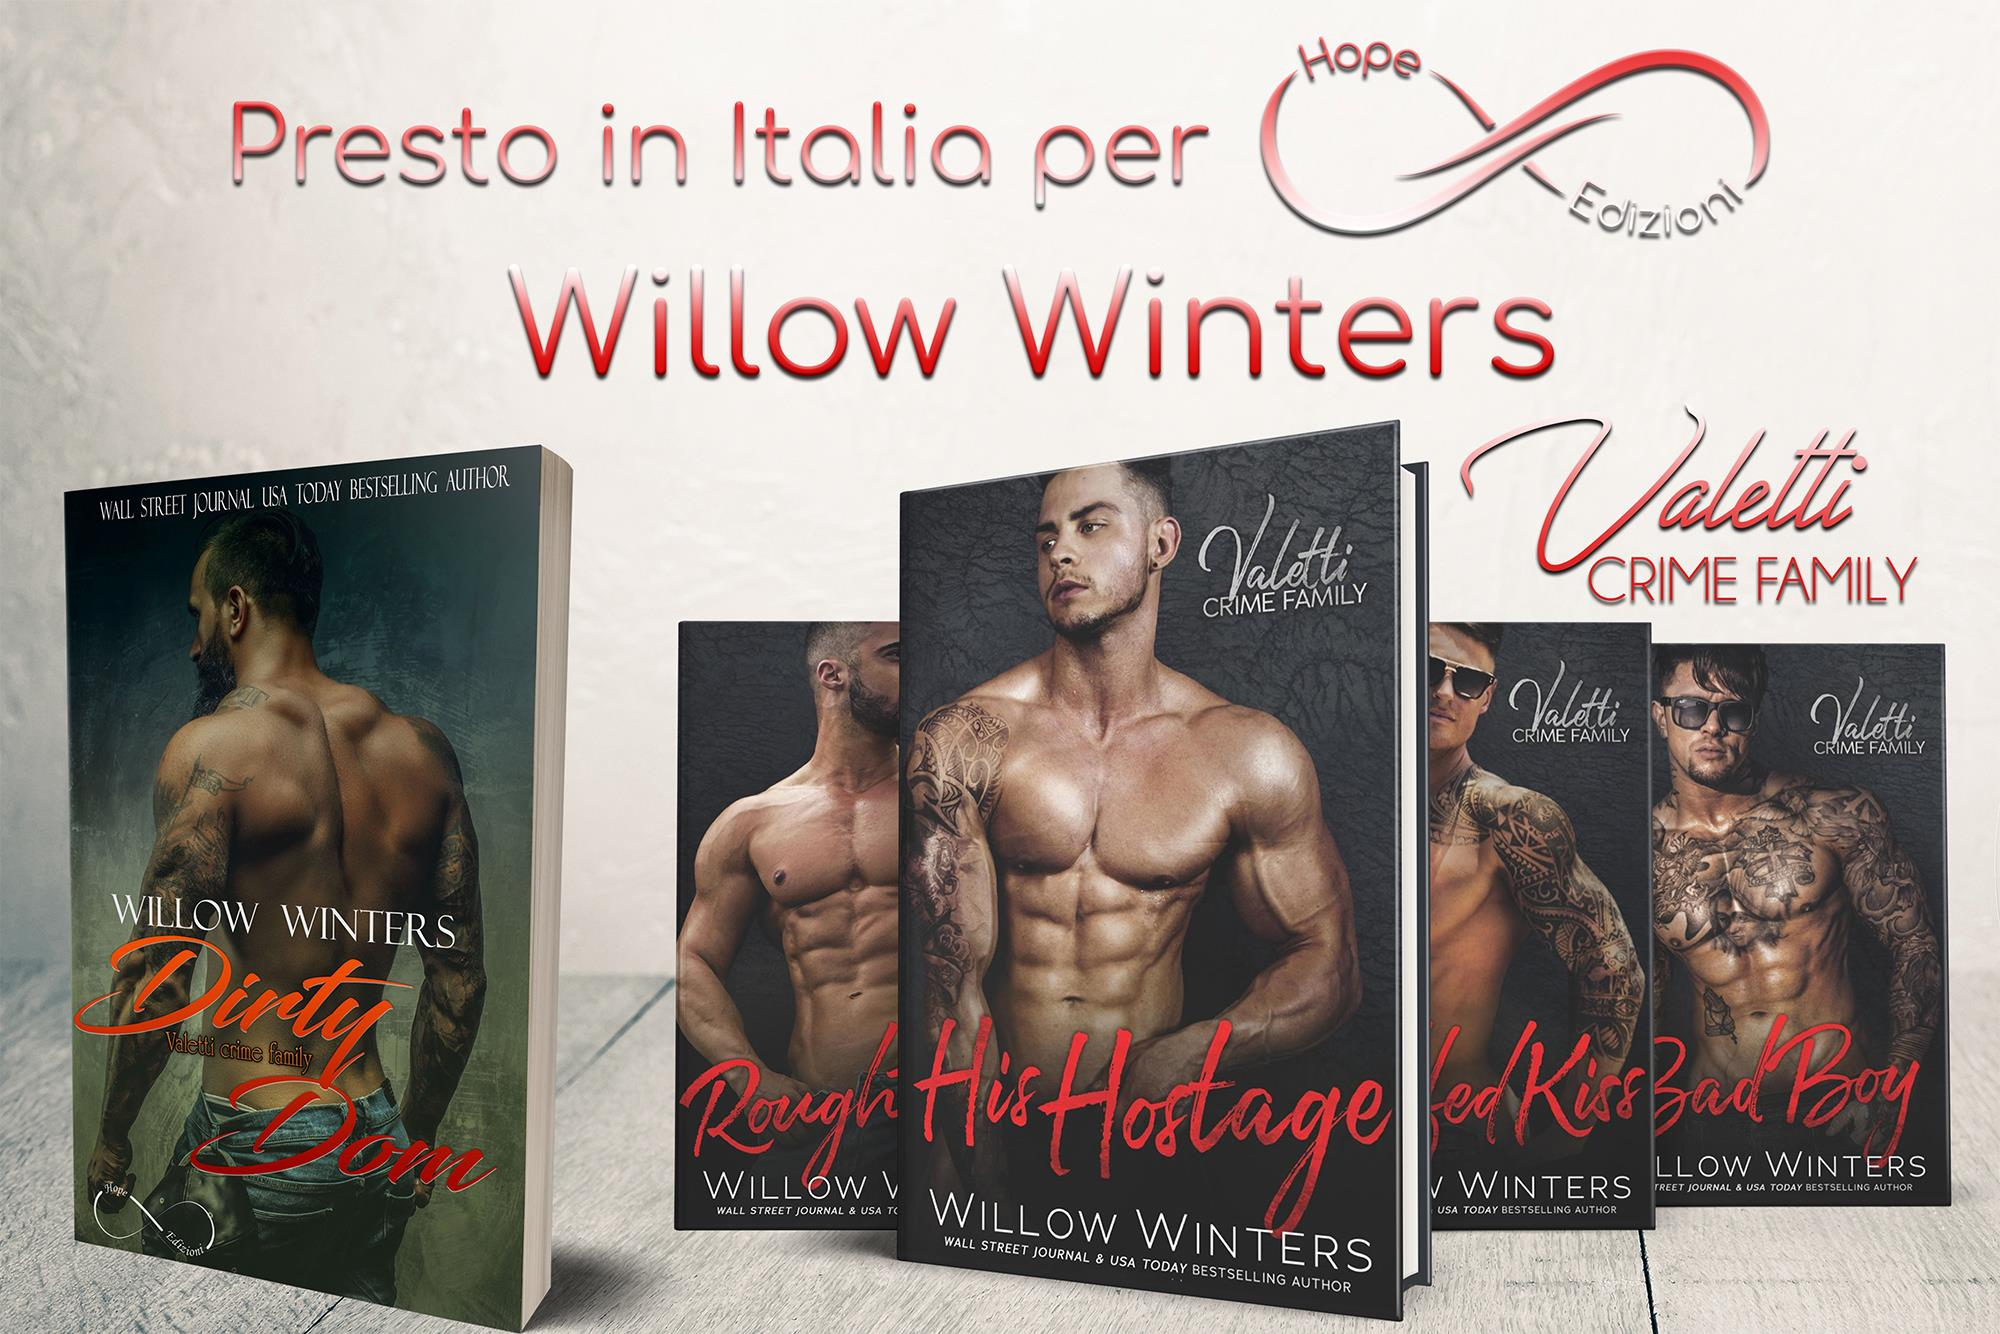 Presto in Italia… Willow Winters!